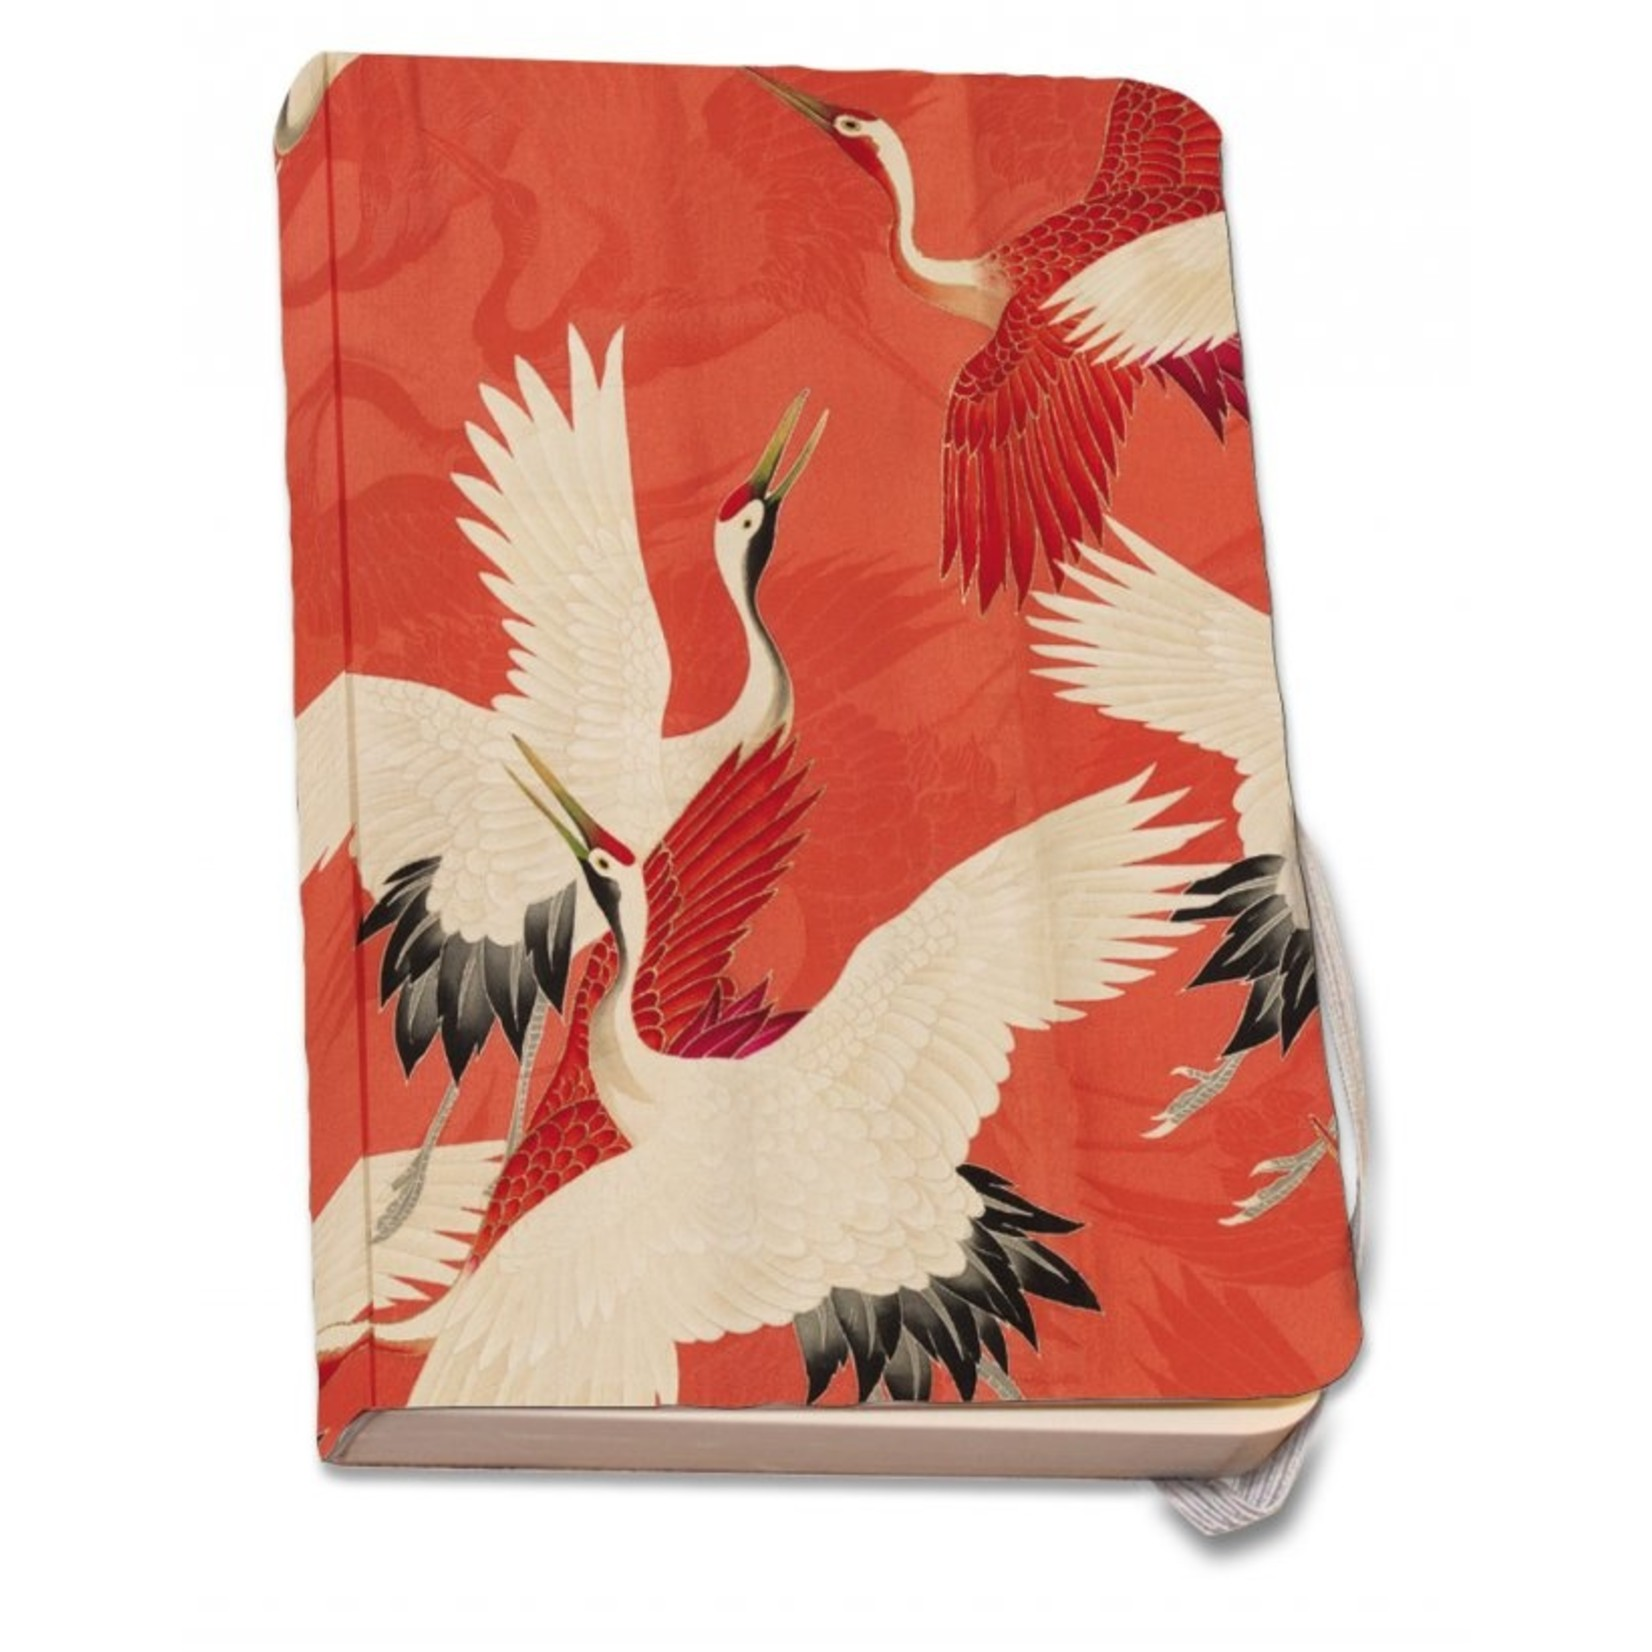 Bekking & Blitz Woman haori with Red and White Cranes(A6) Zachte kaft